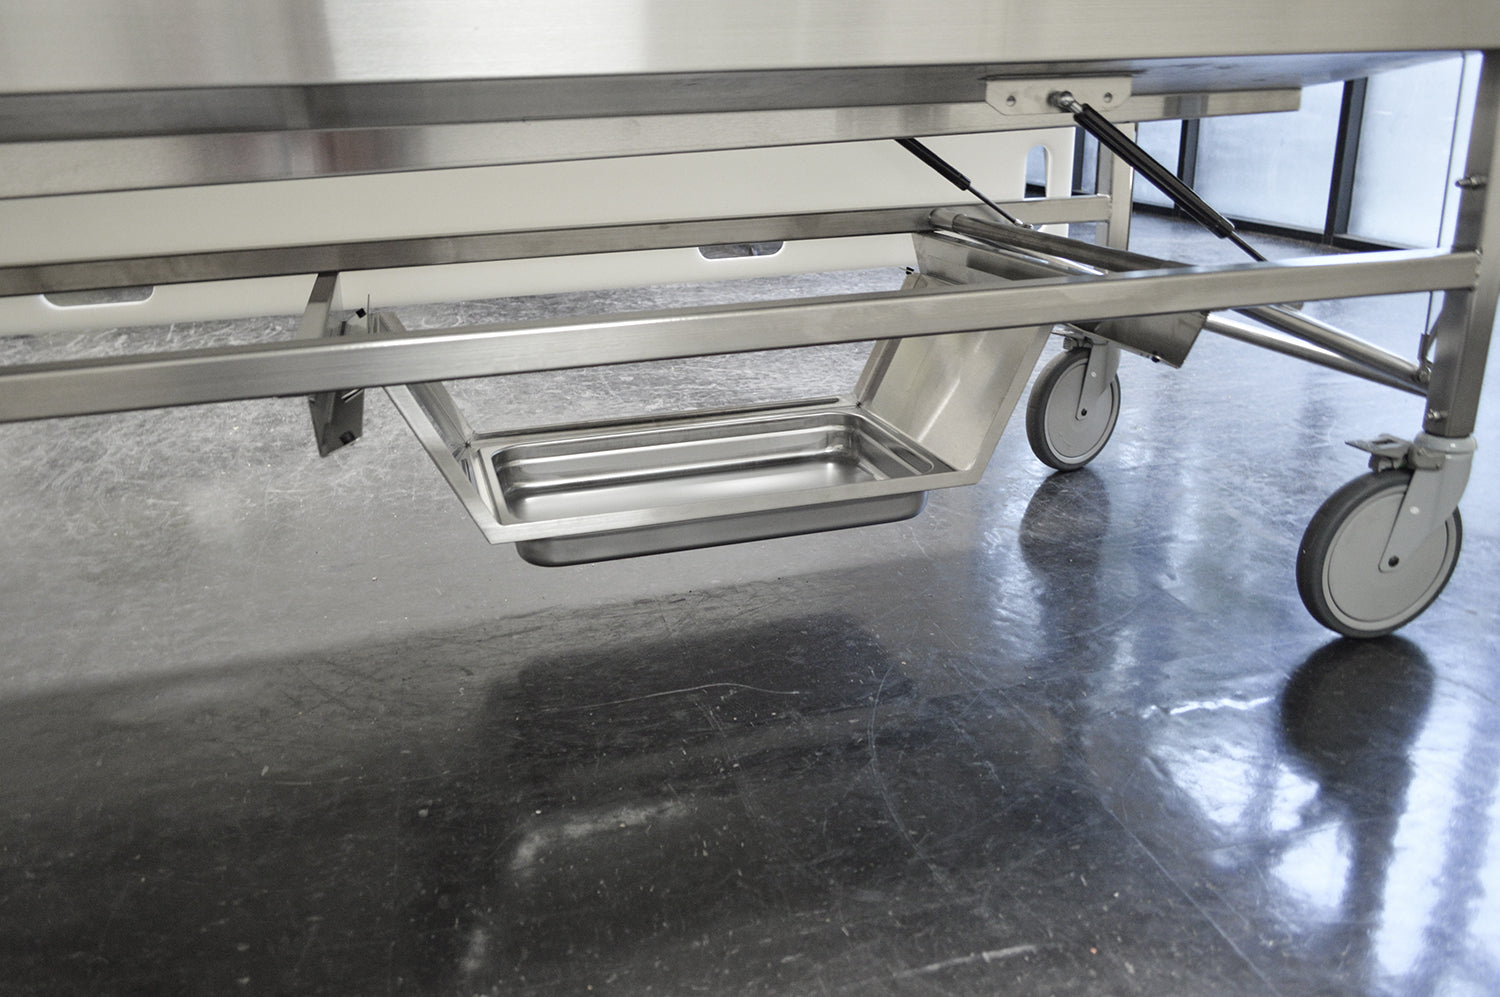 Foot Elevated Immersion Dissection Table